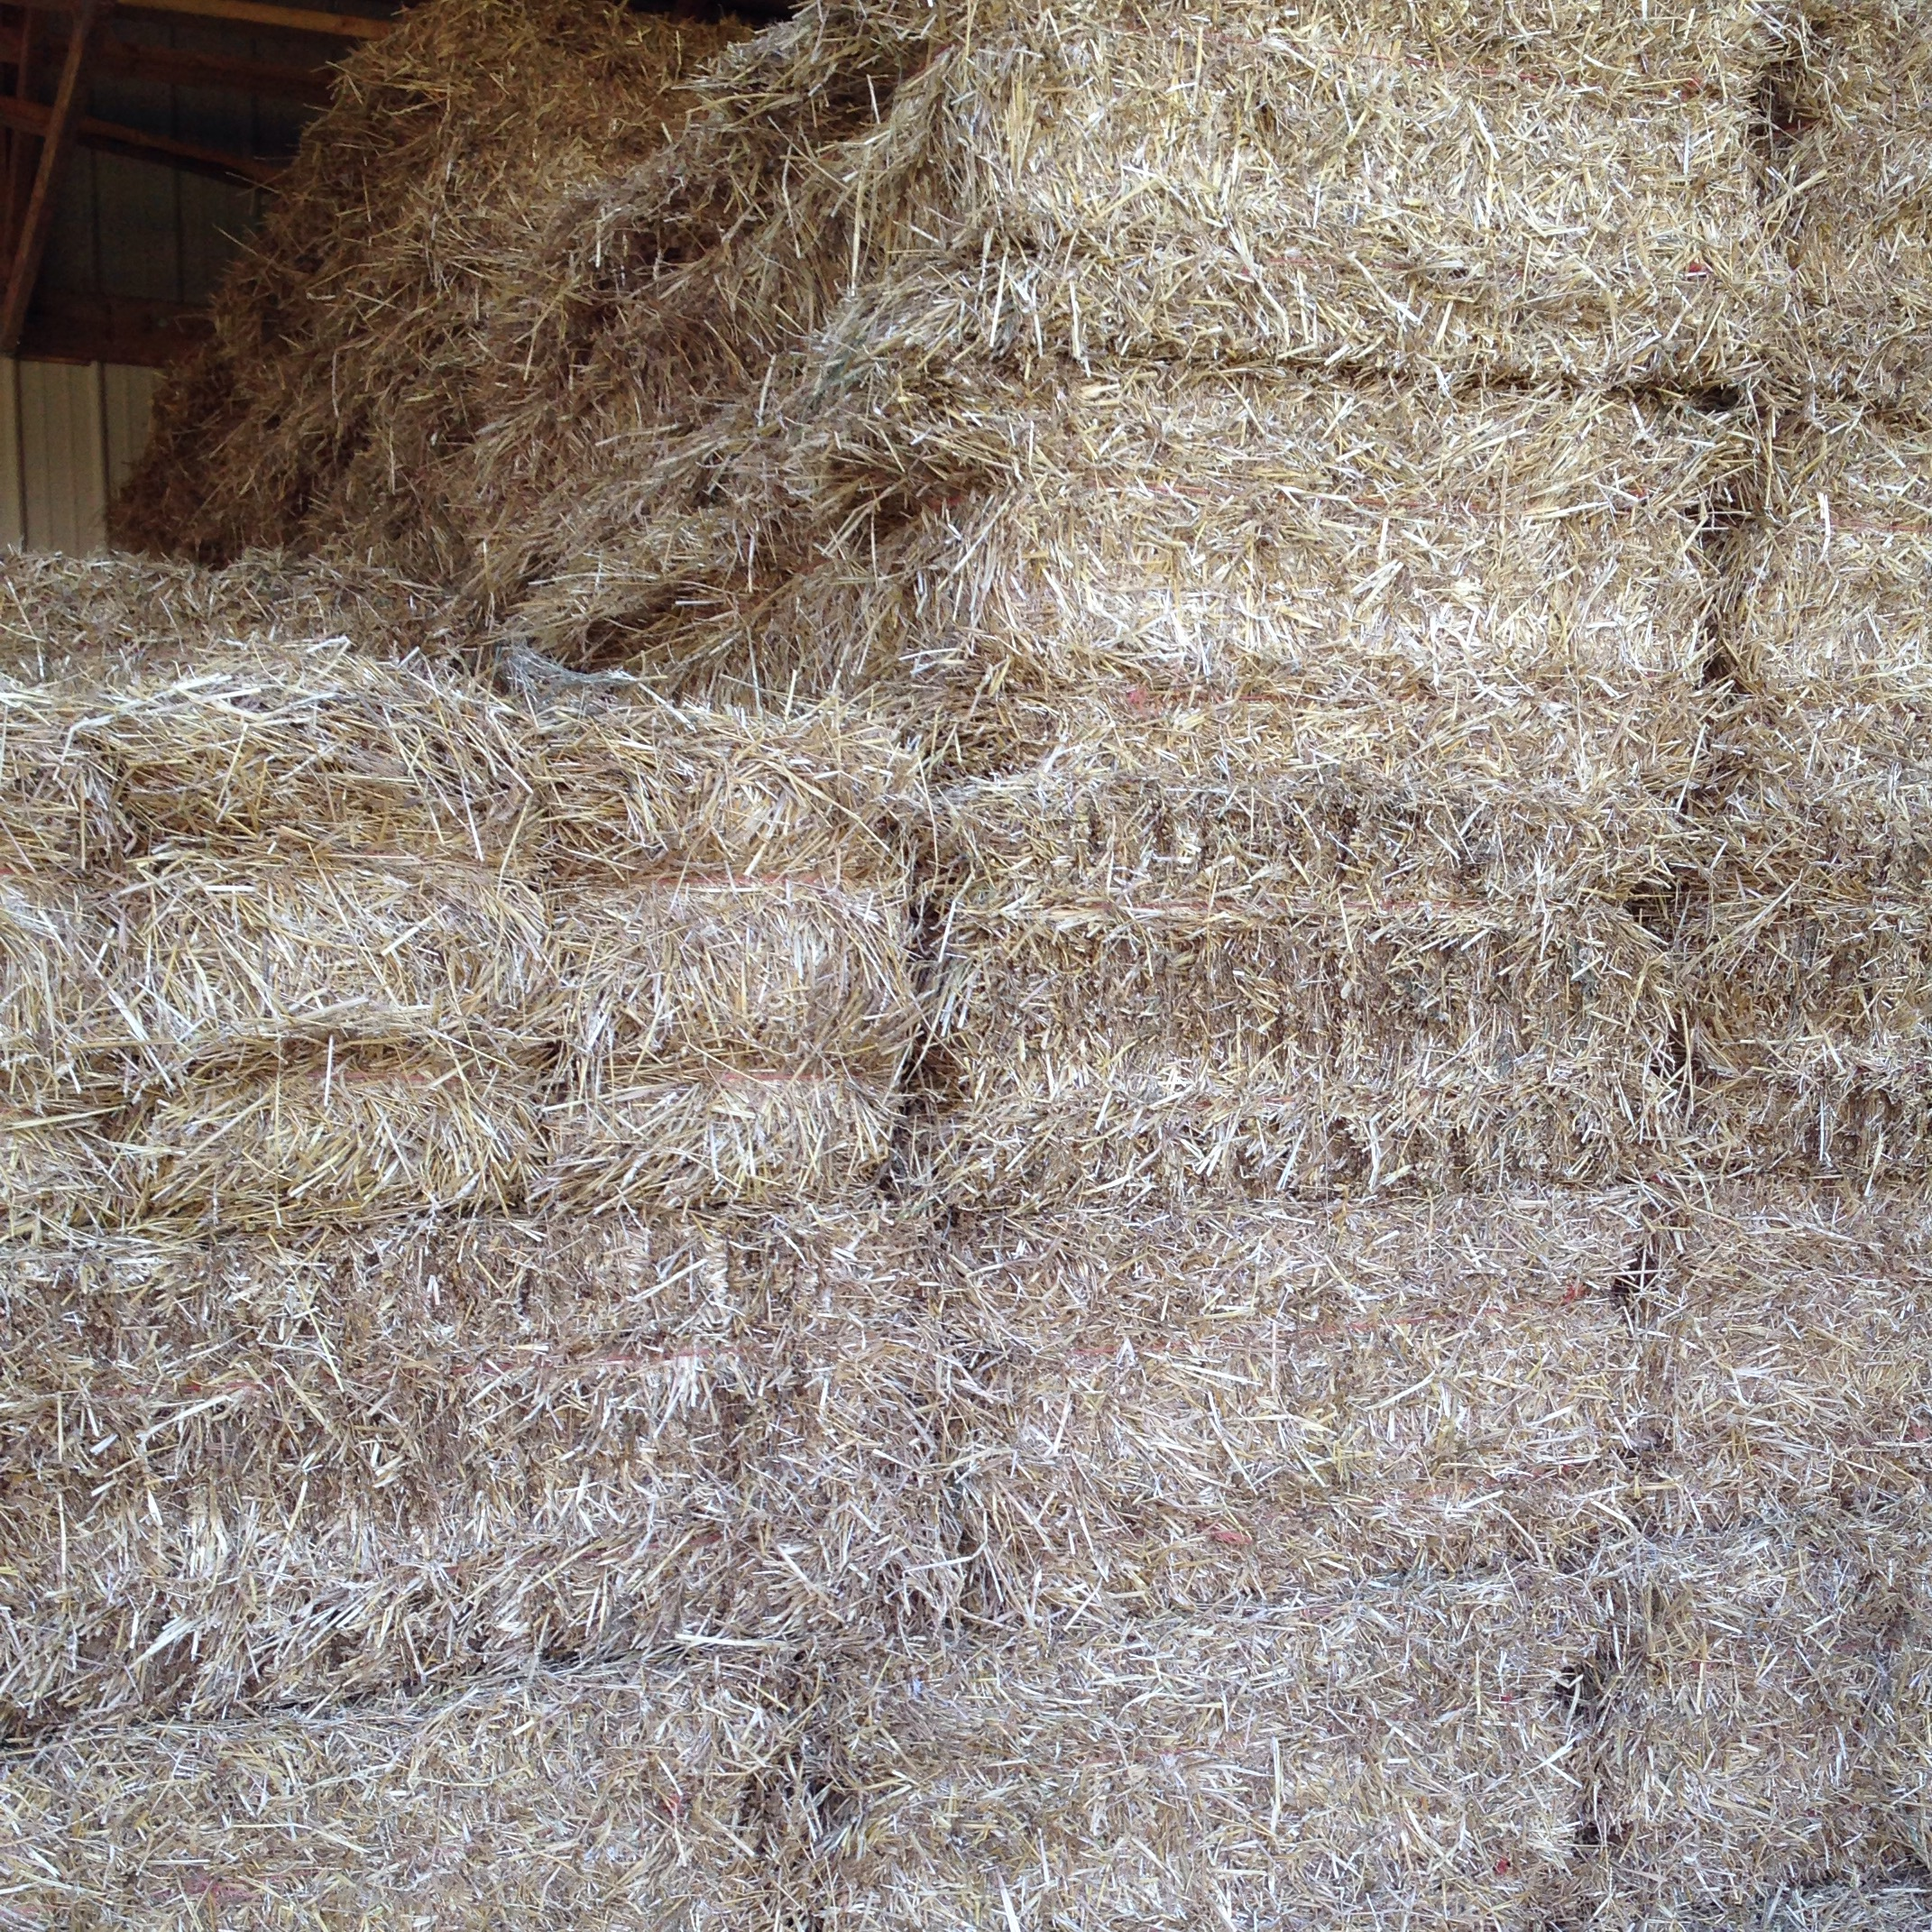 6ed90889b57 Hay For sale in butler